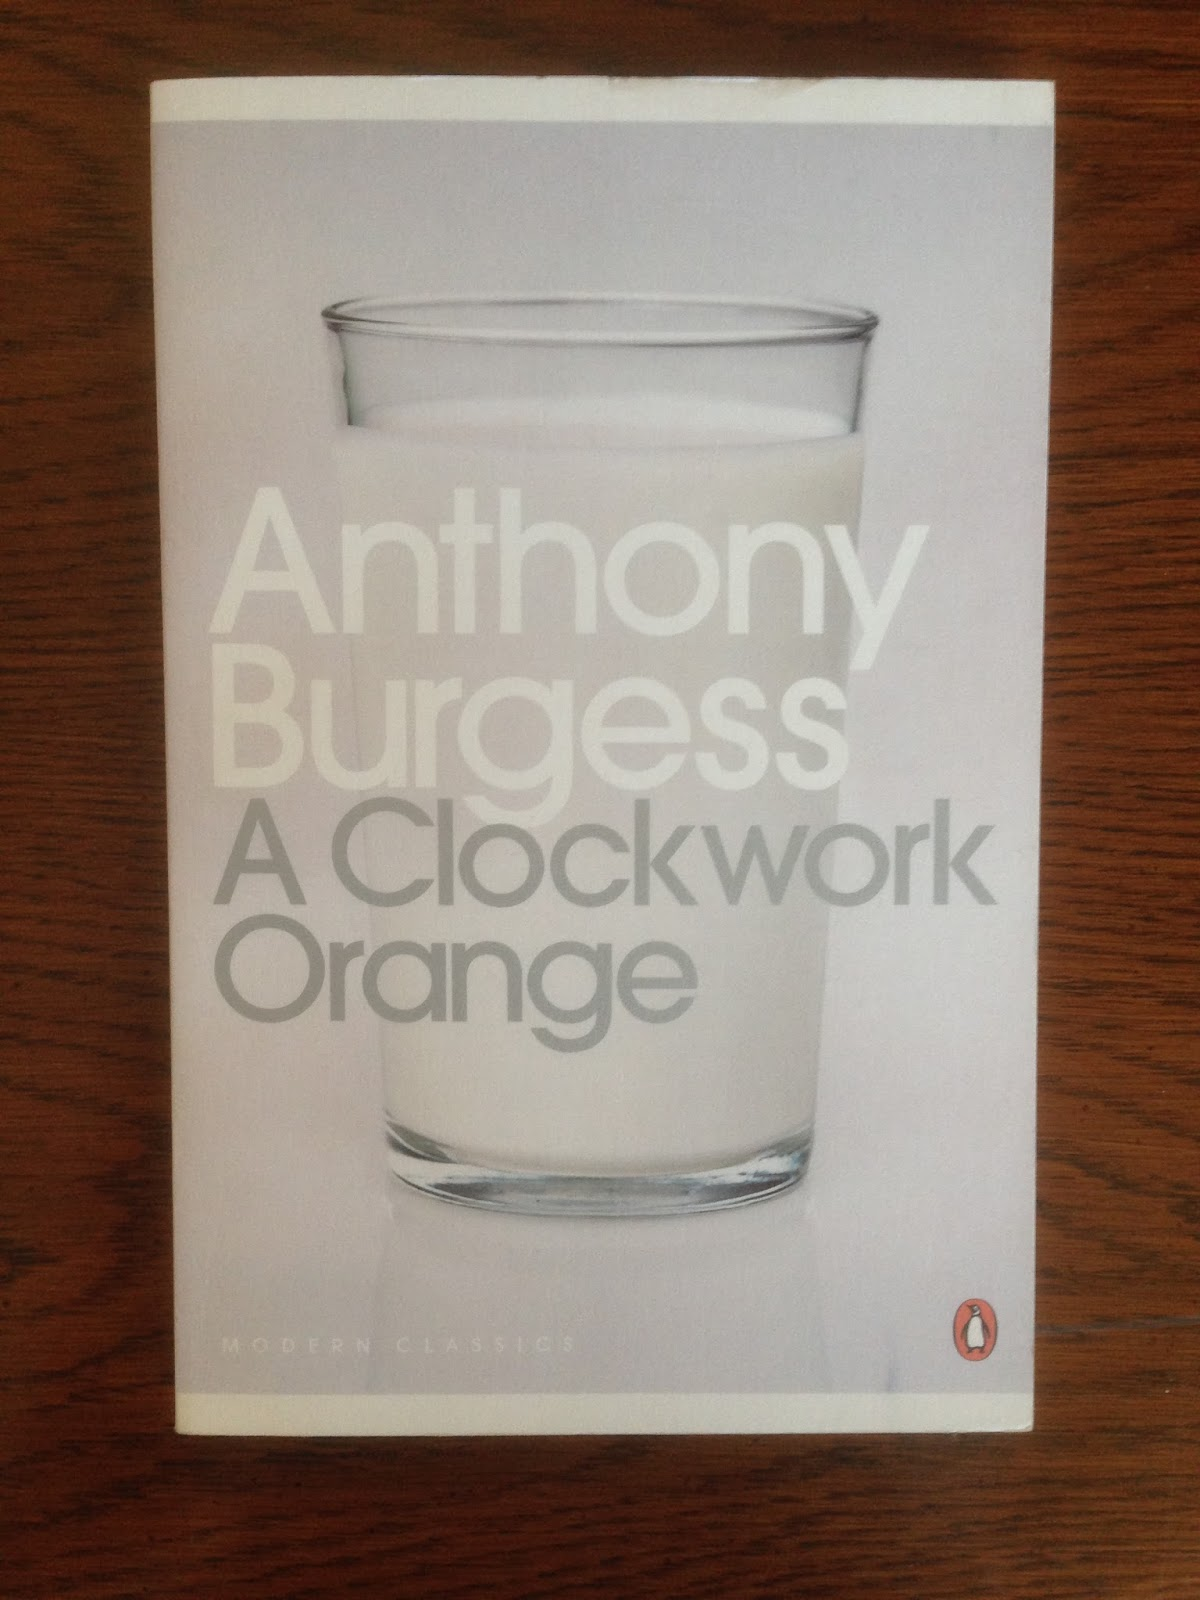 clockwork orange essay conclusion Clockwork orange essay example 2225 words | 9 pages clockwork orange in all of my reading, i have come to the conclusion that anthony burgess is one of the greatest literary genius's of the.